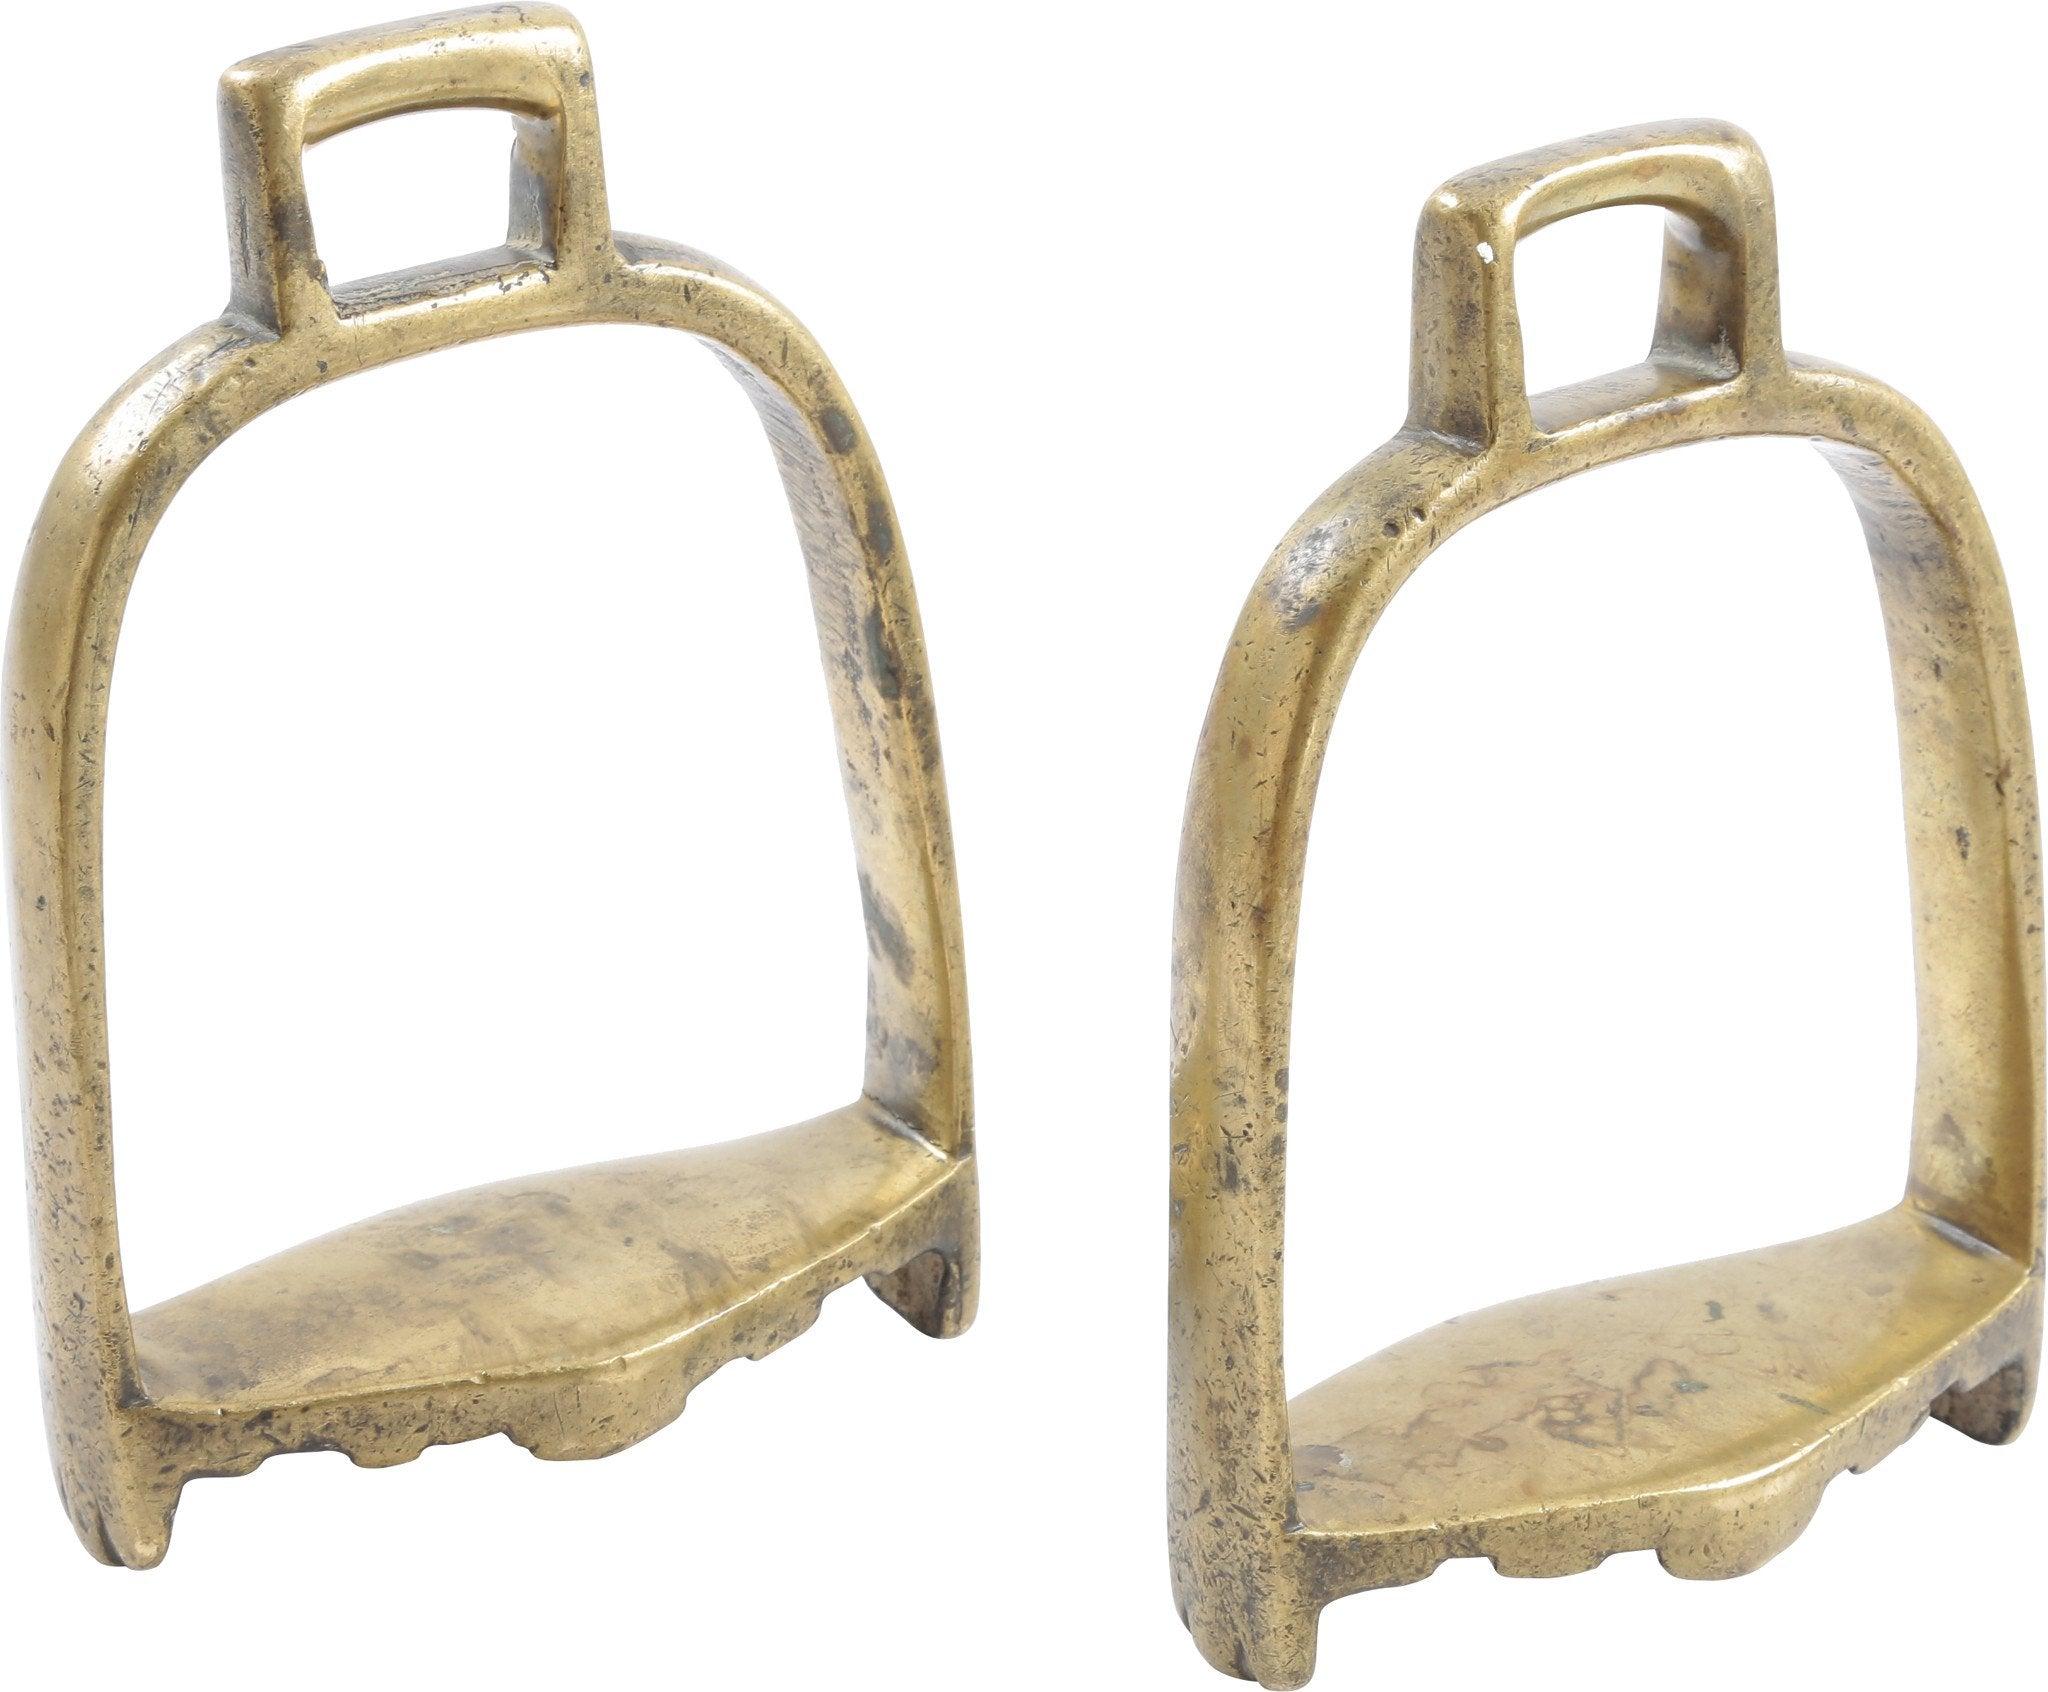 Pair Of Indopersian Stirrups - Product